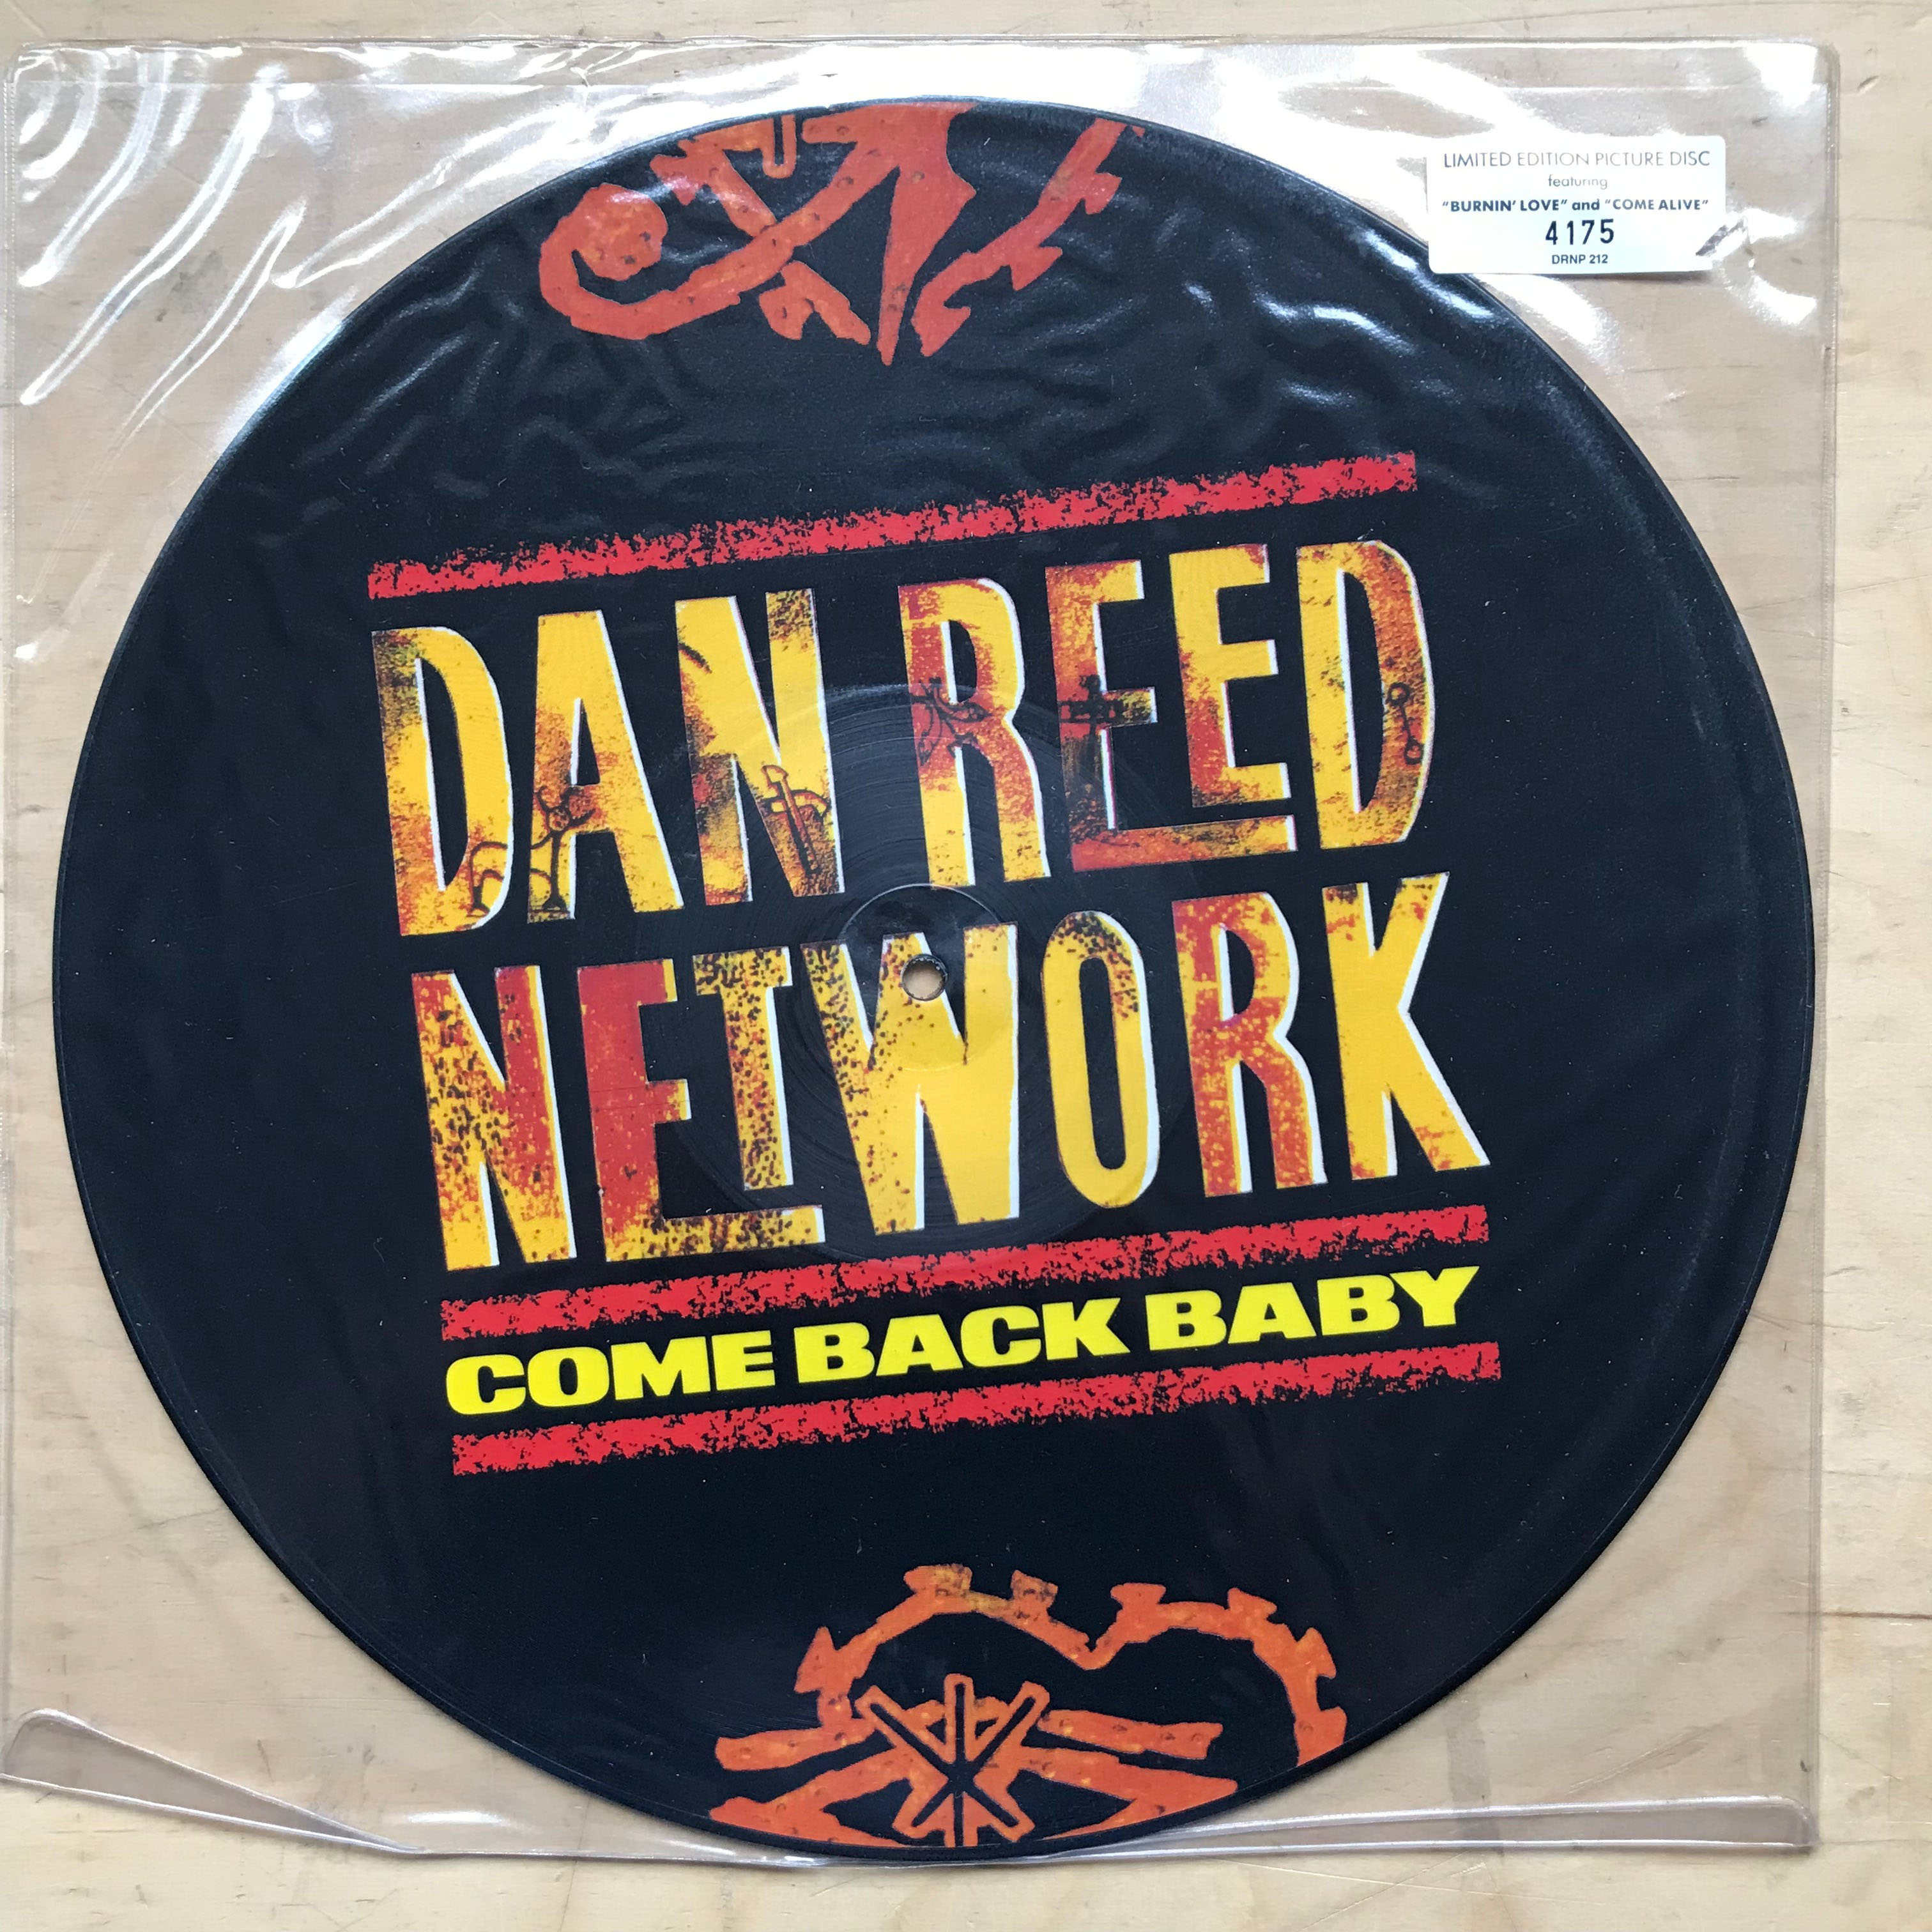 DAN REED NETWORK - COME BACK BABY